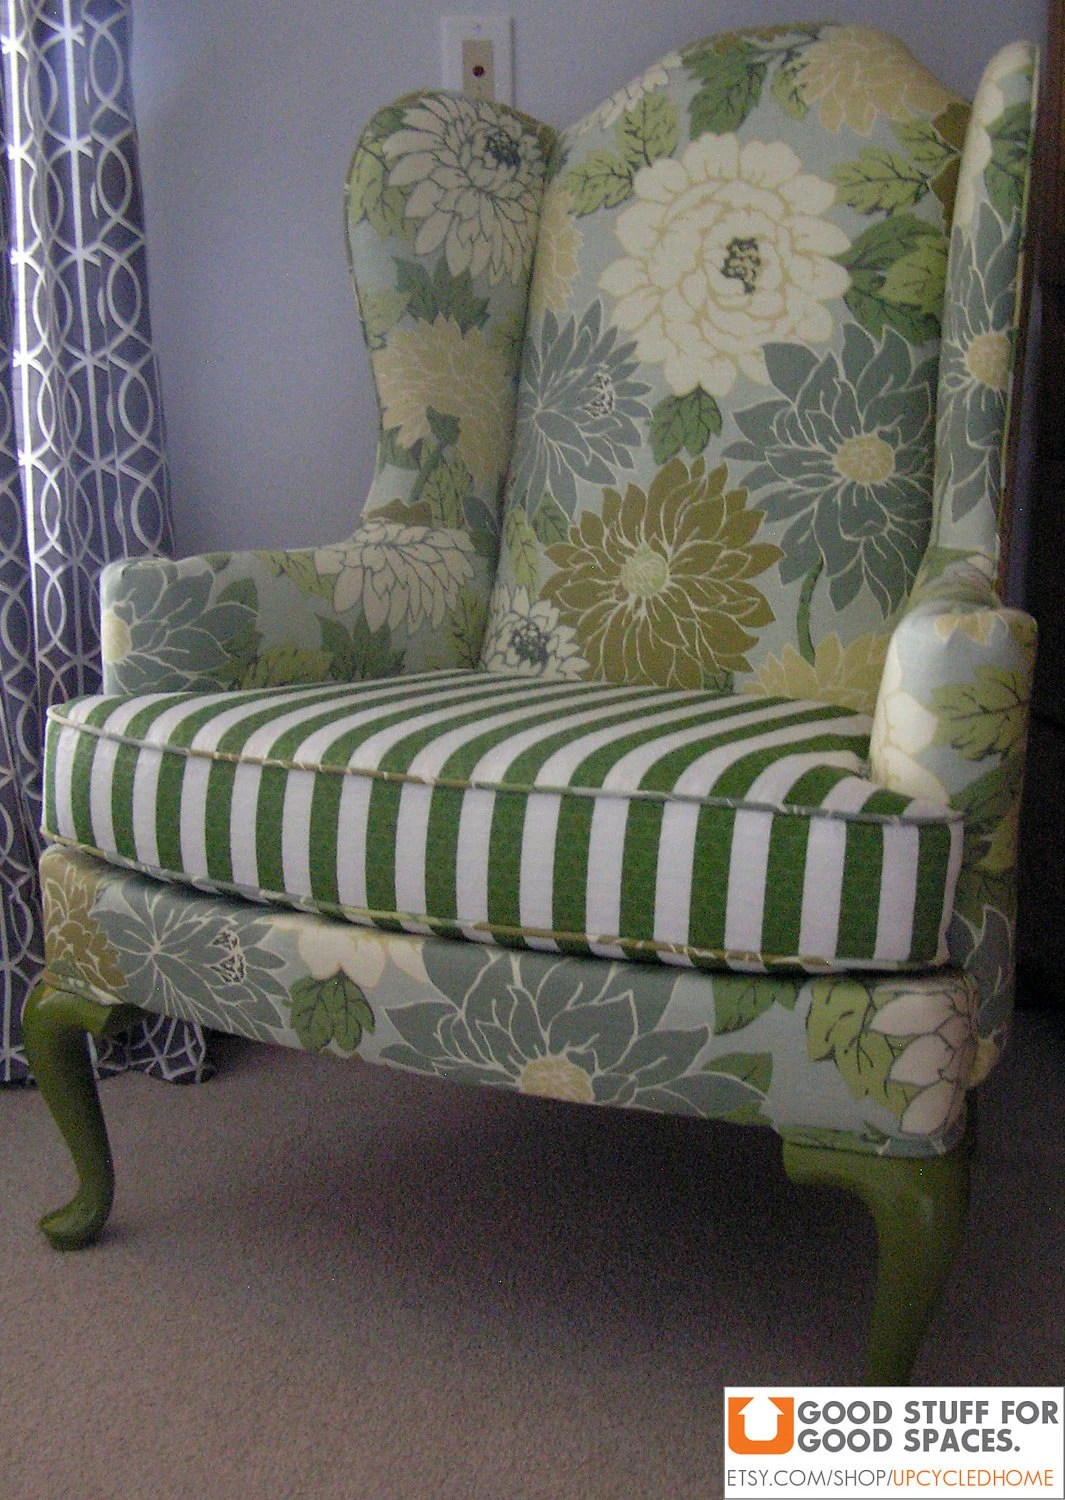 Vintage Wingback Chair Reupholstered in Flowered and Striped